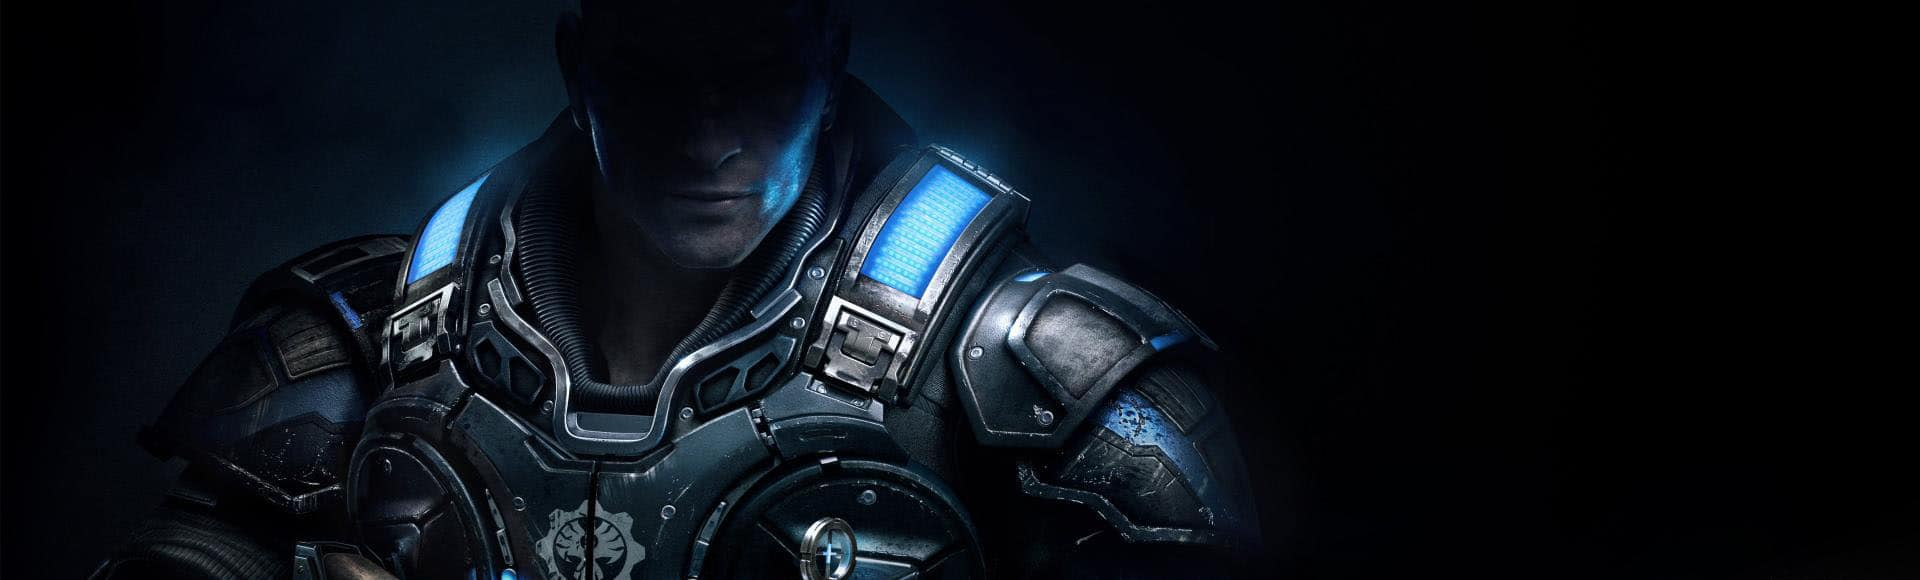 Gears 5 Release Date, News, Trailer, and Rumors